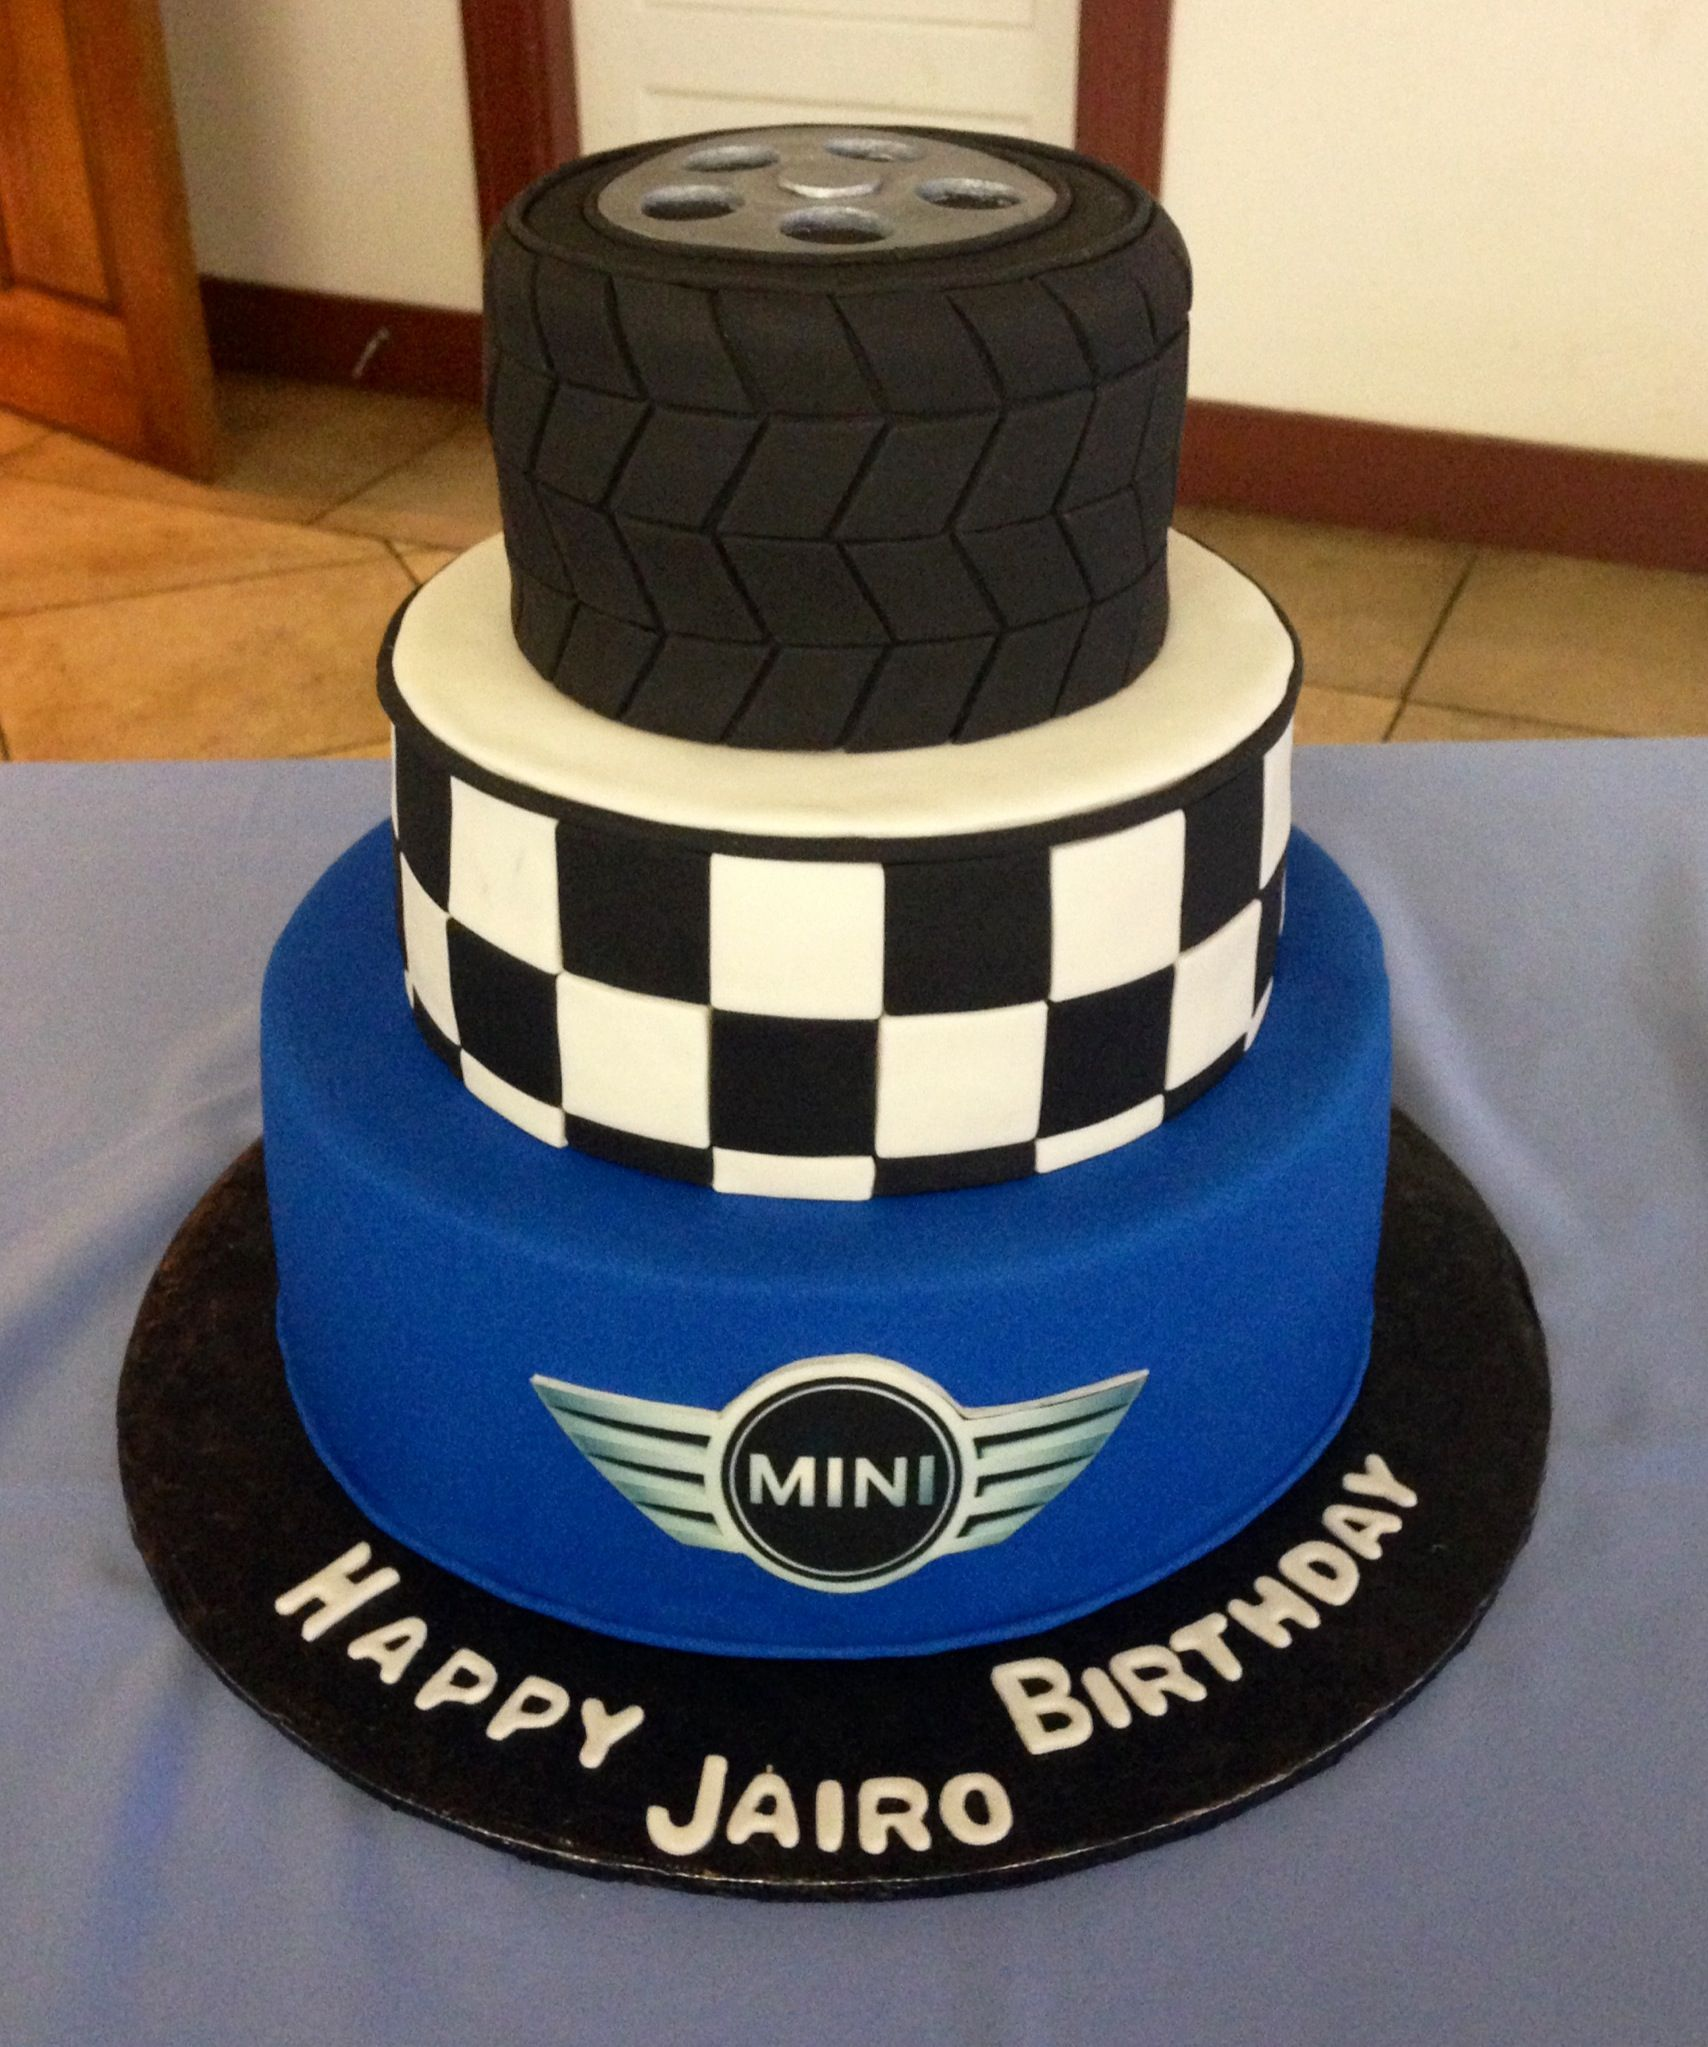 The blue cake company wedding cakes birthday cakes 2016 car release - Made This Tire Mini Cooper Birthday Cake Mini Cooper Cakecar Cakesfood